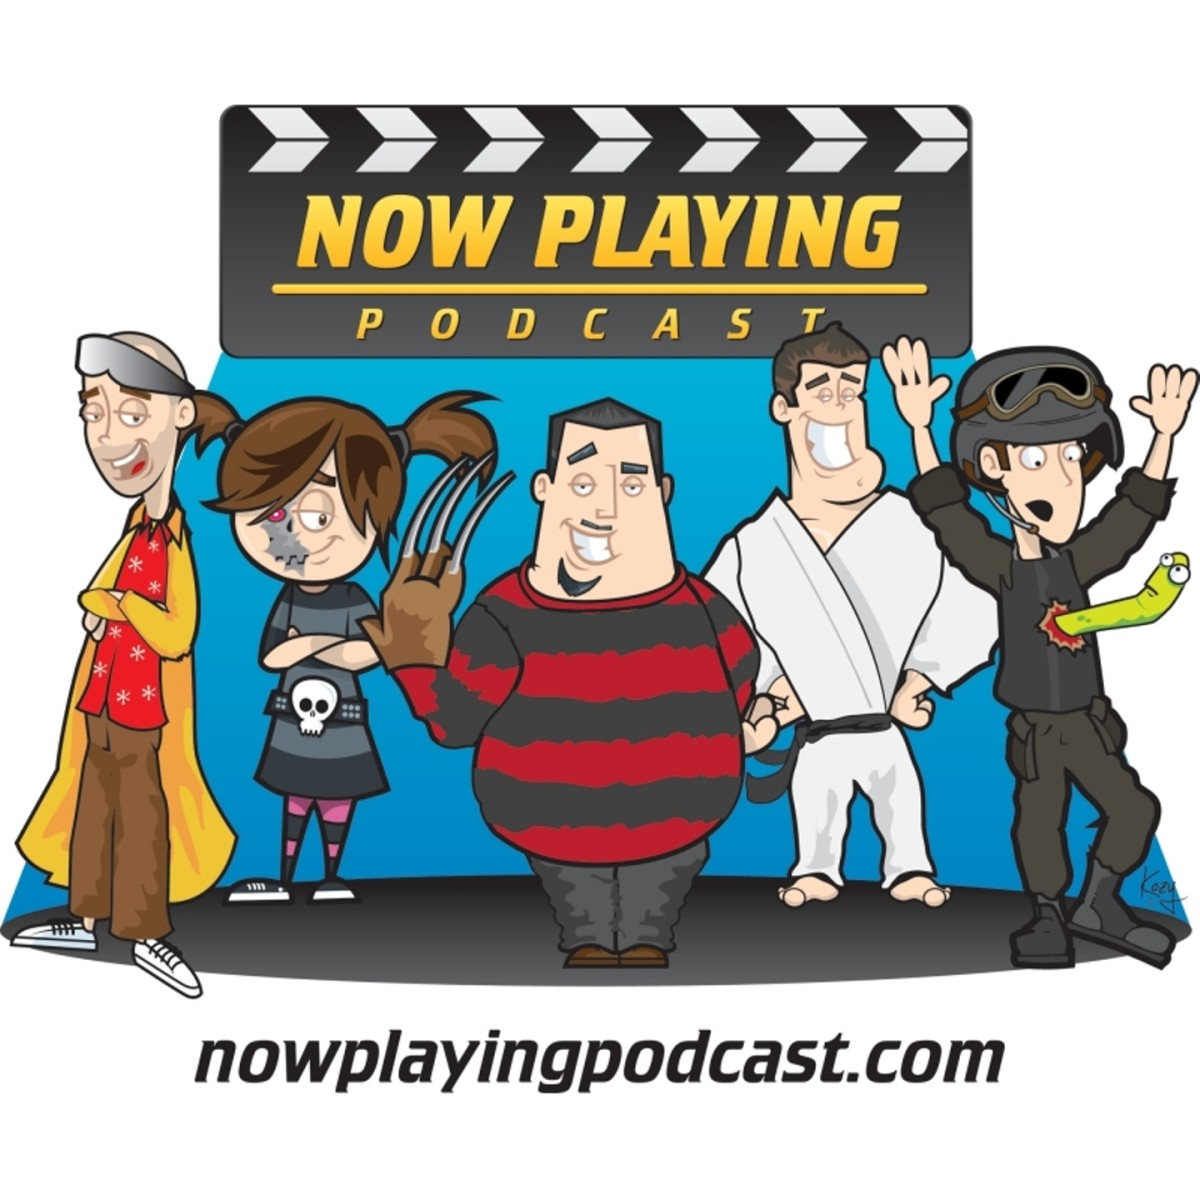 The Now Playing podcast publishes a new movie review every week, and also reviews movie series in total.